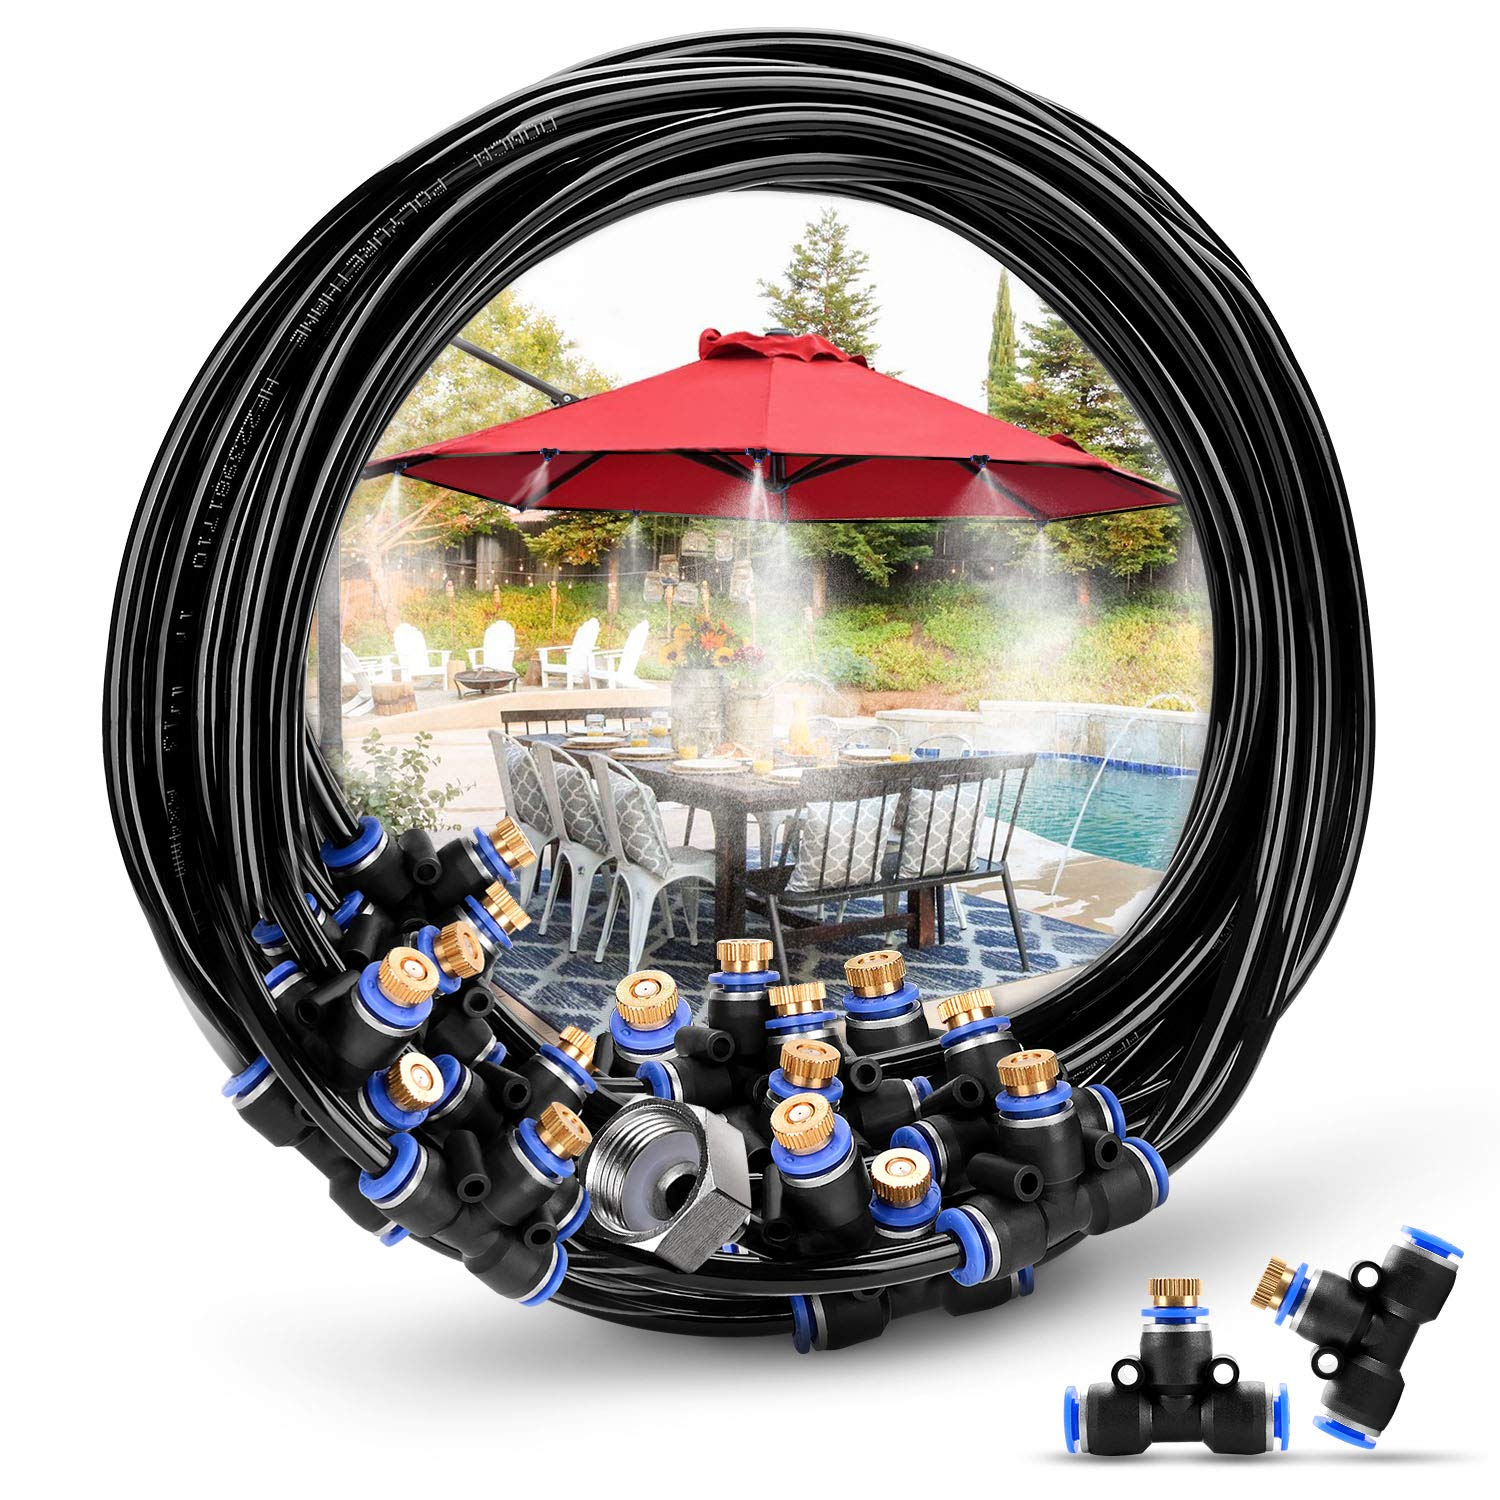 HOMENOTE Misting Cooling System 75.46FT (23M) Misting Line + 34 Brass Mist Nozzles + a Brass Adapter(3/4'') Outdoor Mister for Patio Garden Greenhouse Trampoline for waterpark by HOMENOTE